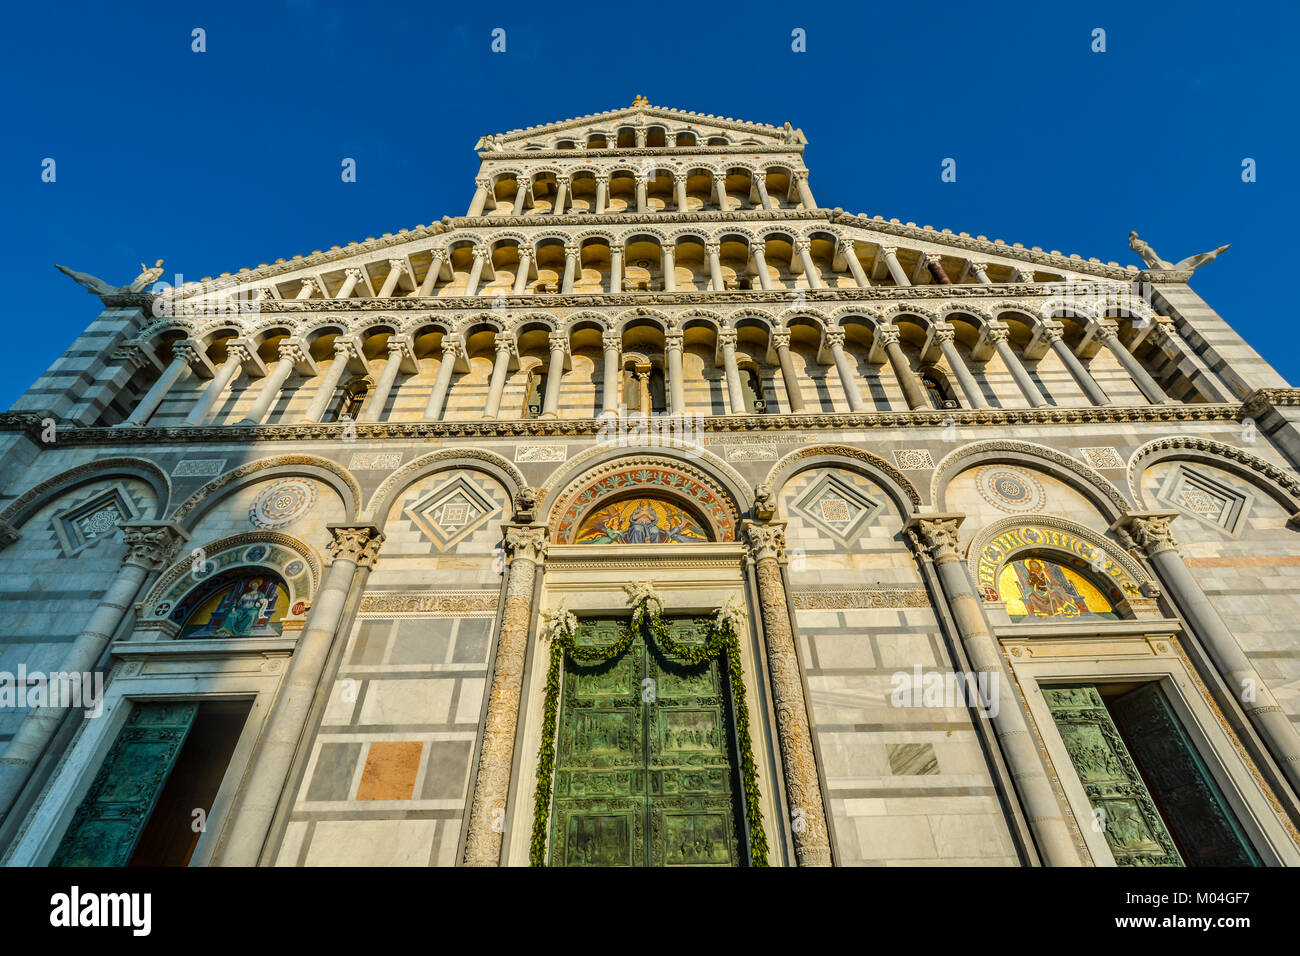 The exterior facade including the bronze doors of the Cathedral of Santa Maria Assunta, the Duomo of Pisa Italy - Stock Image